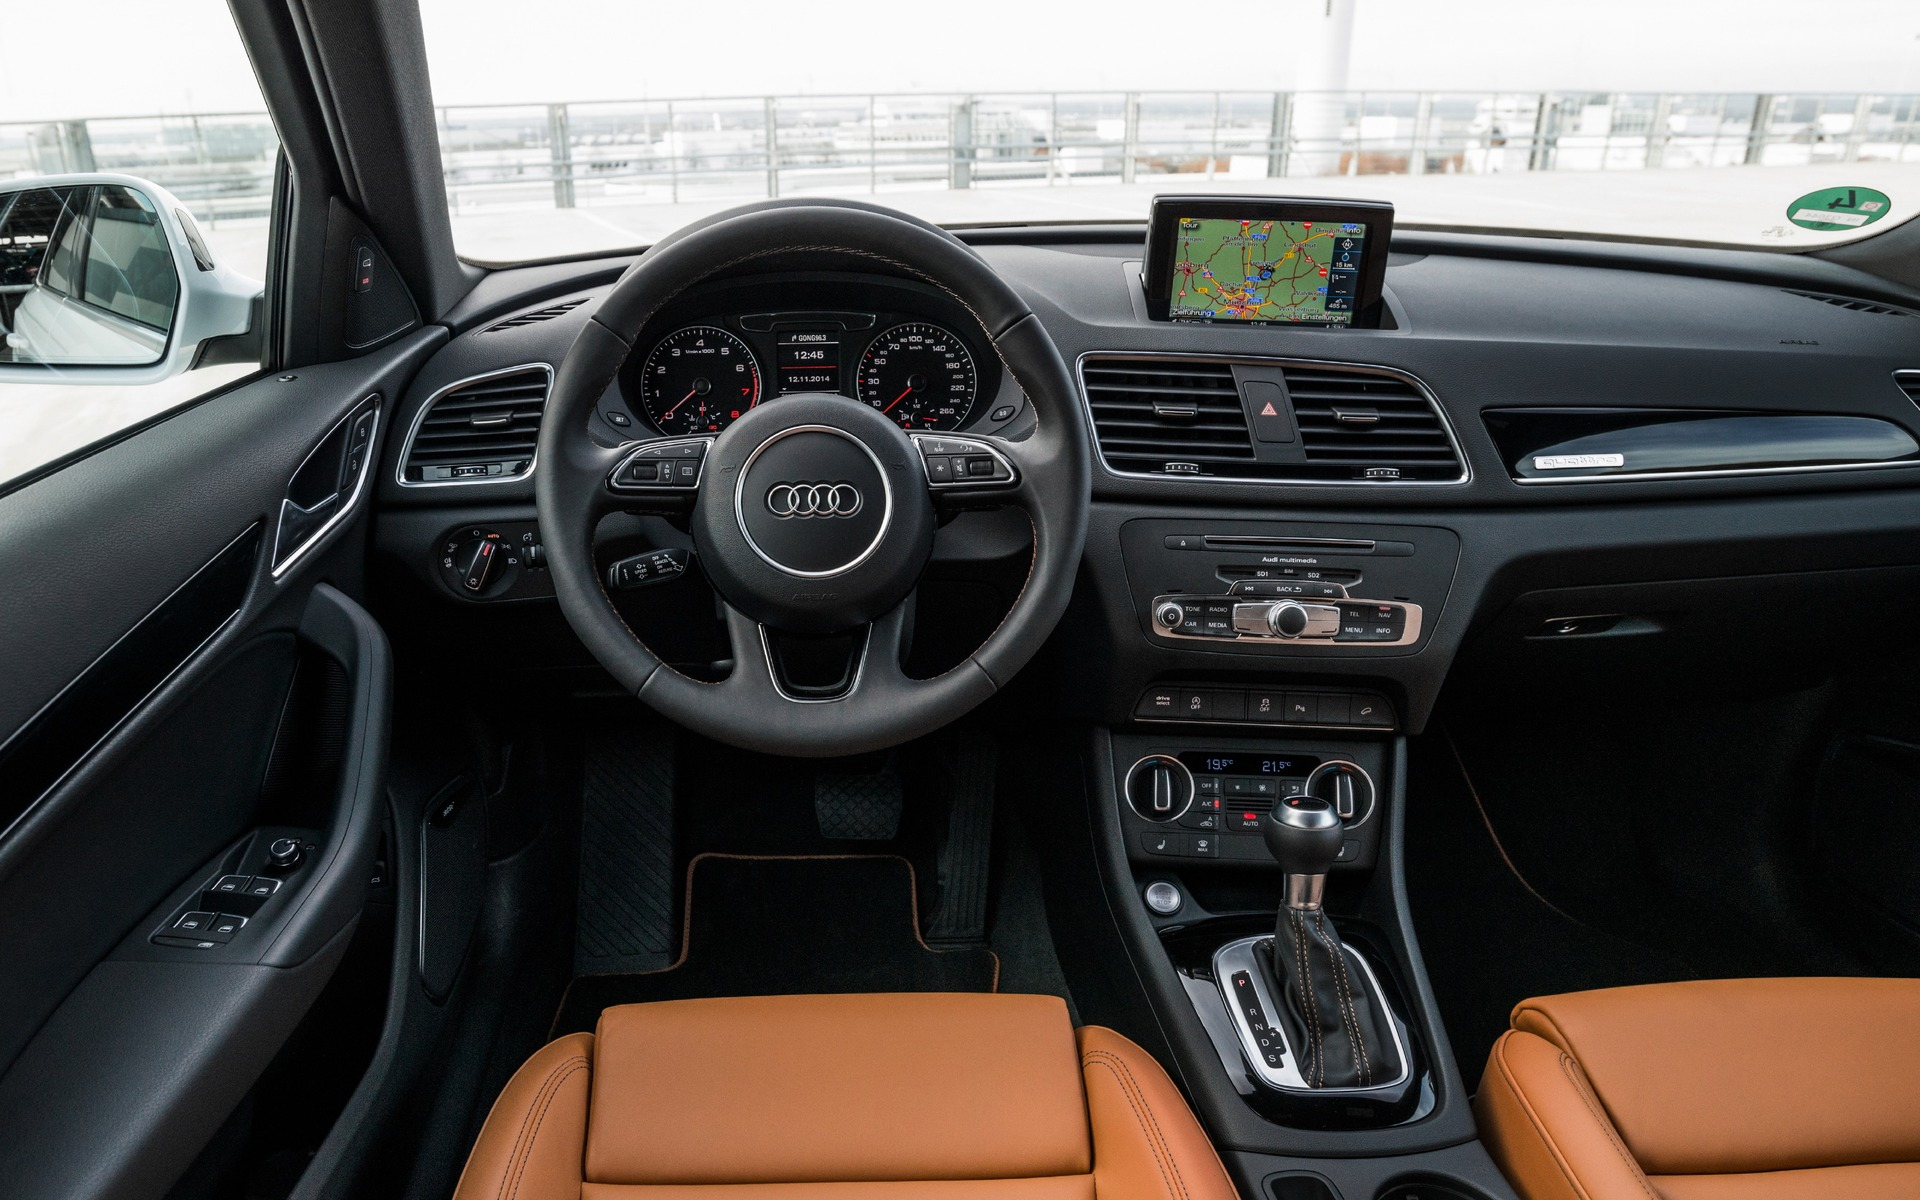 2016 Audi Q3 New Look For The Compact Luxury Suv 3 19